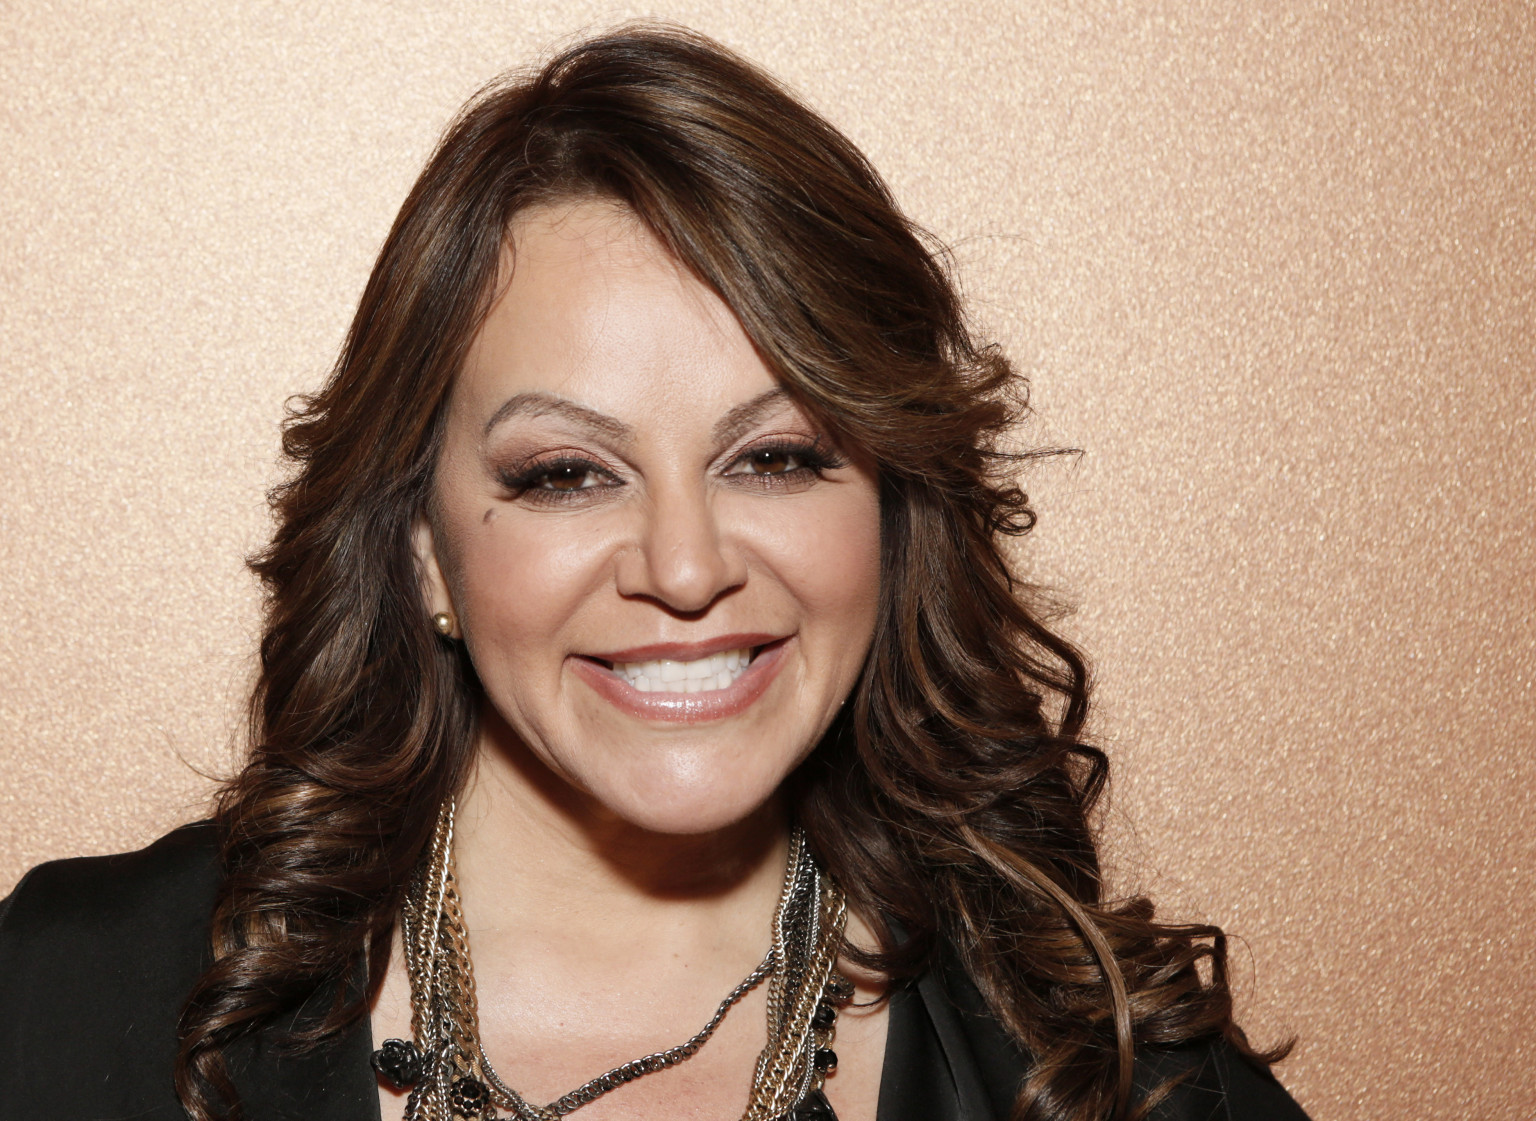 Jenni Rivera's quote #7